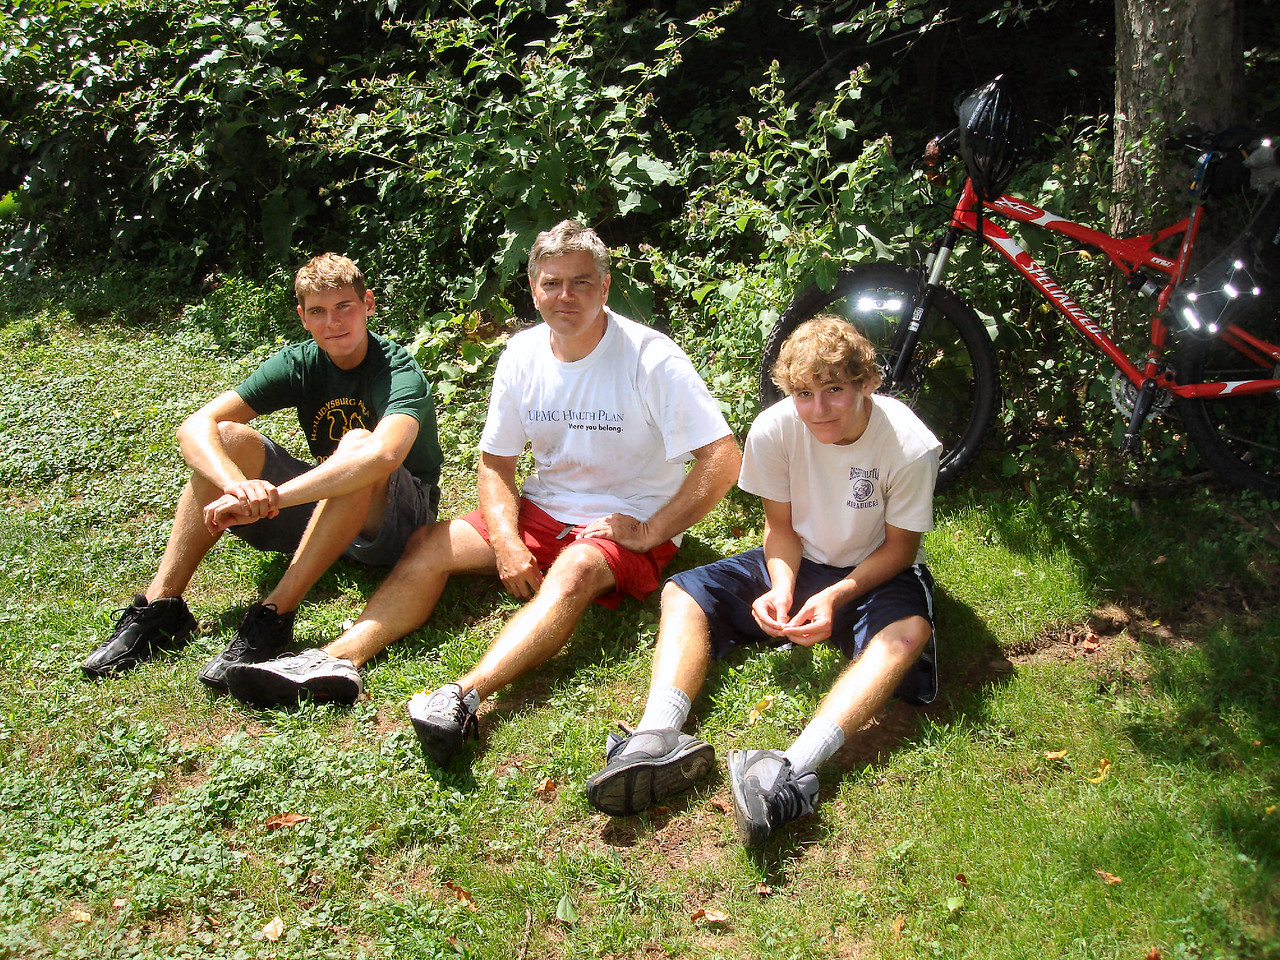 Jasent, Dave, & Jarred - Newbies that had a great ride.